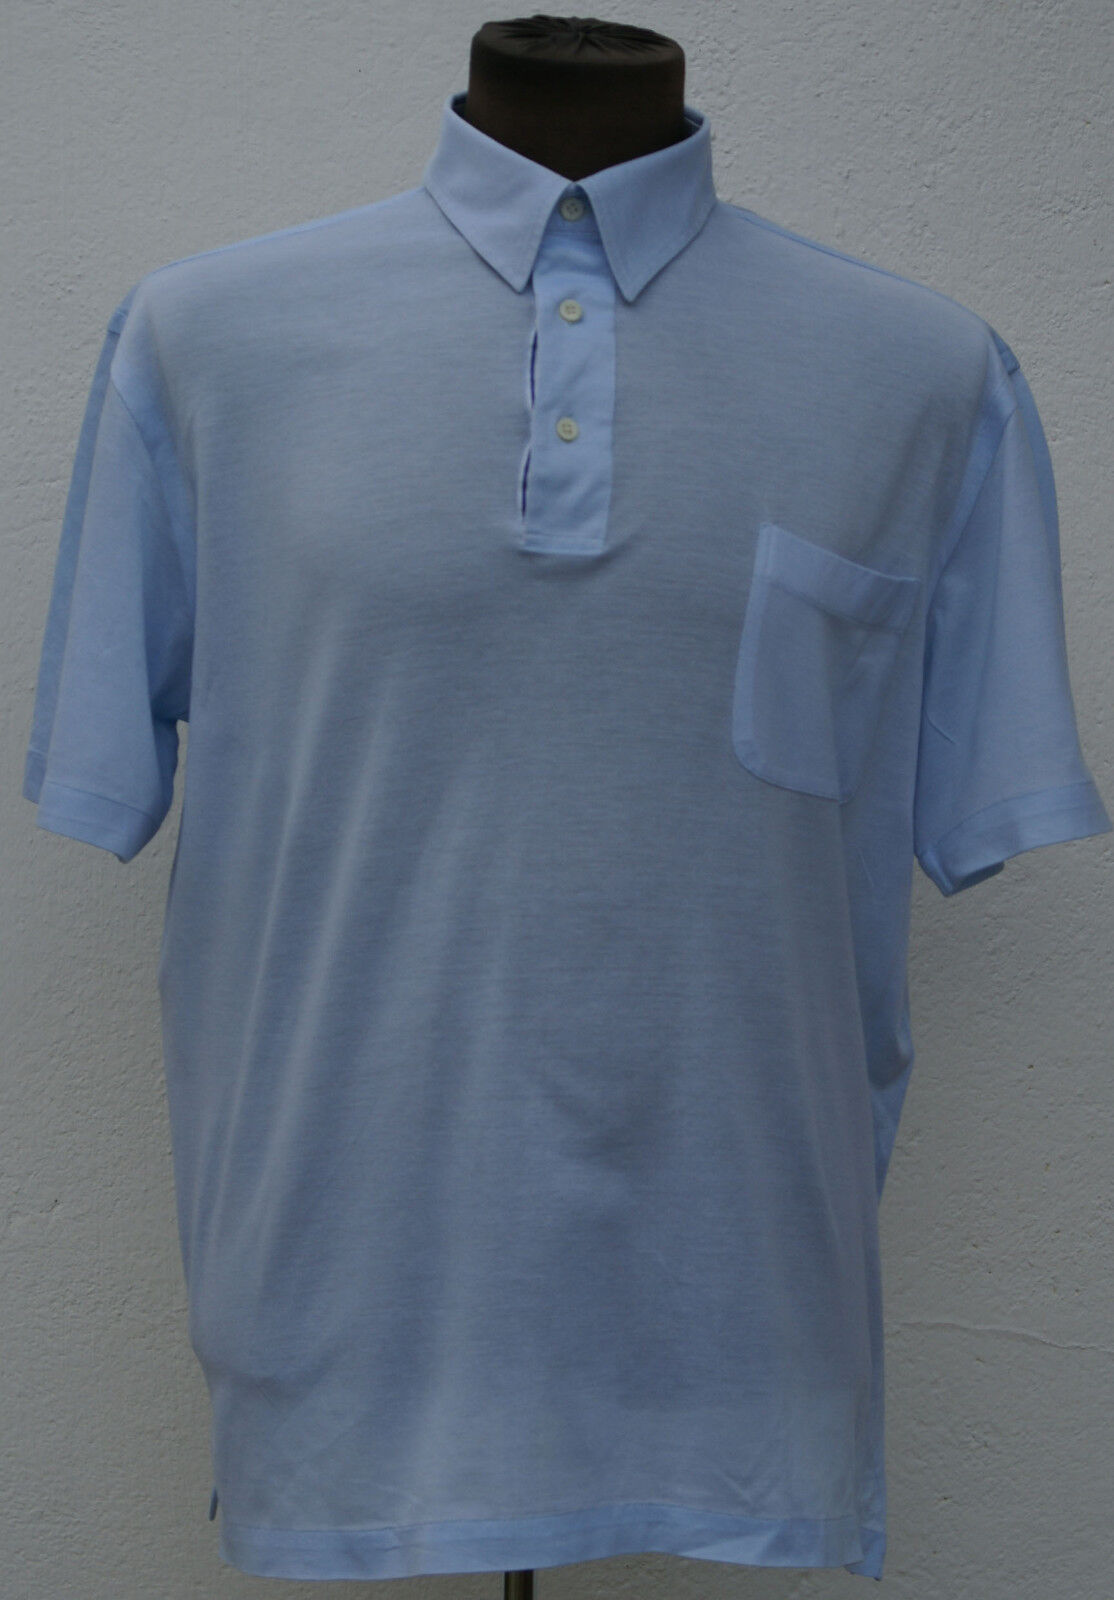 Brioni light bluee polo t-shirt sz XL